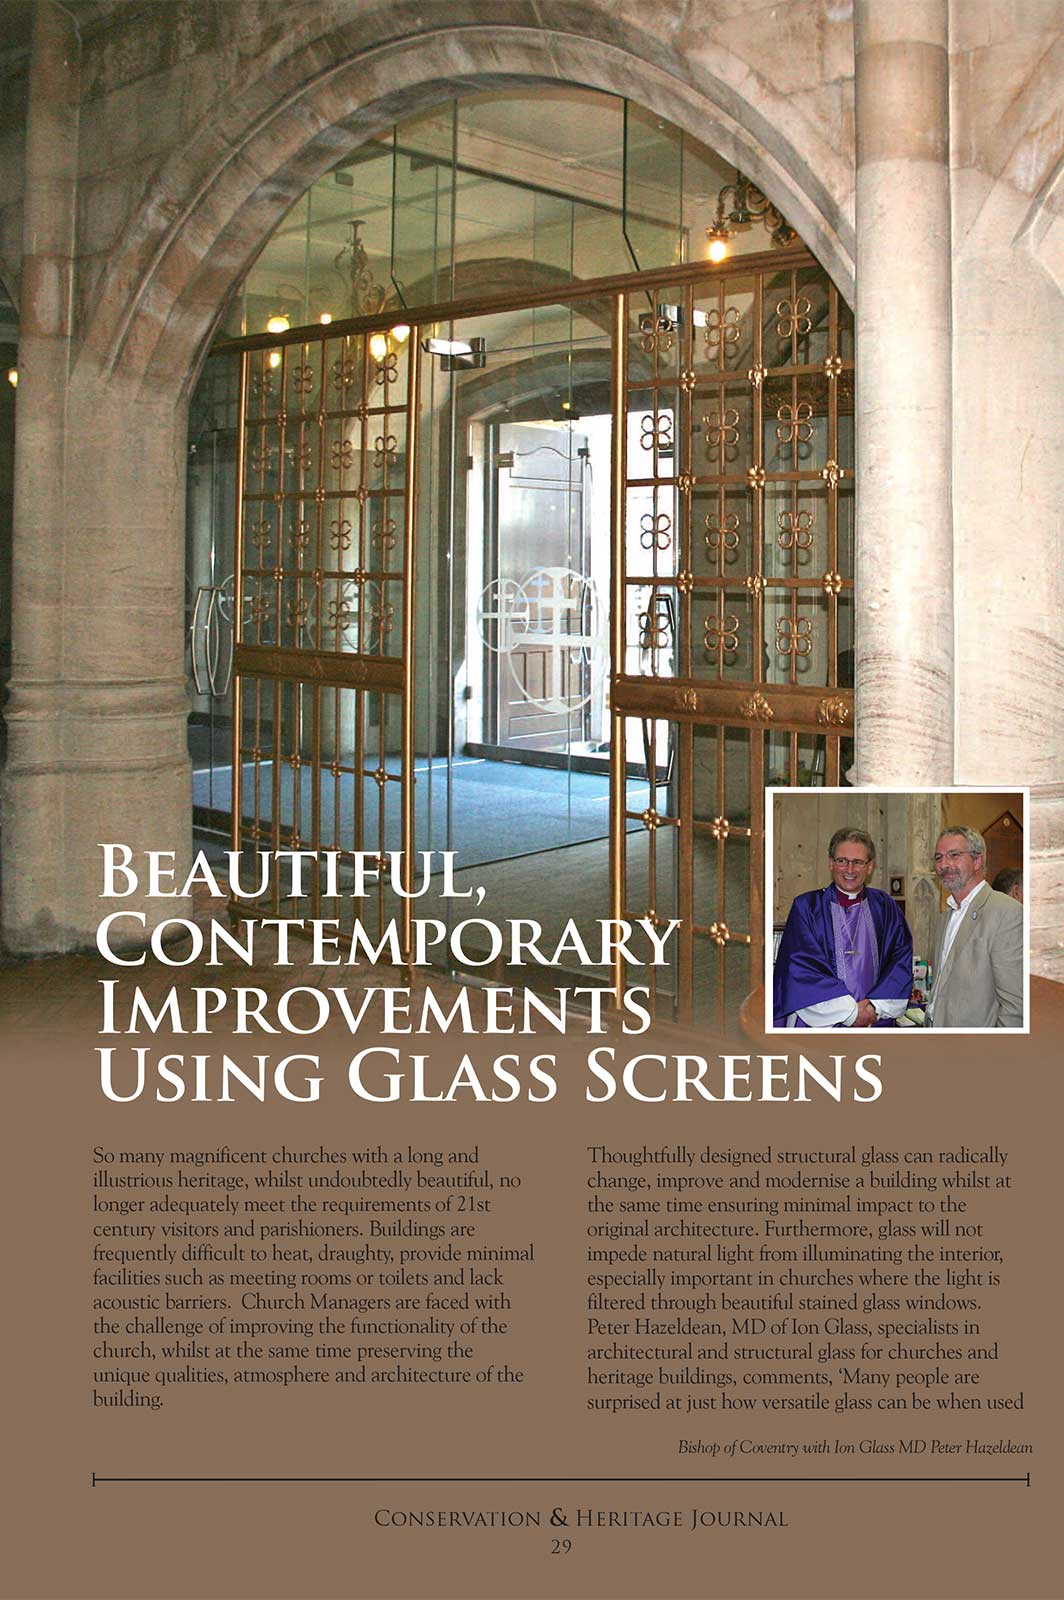 Beautiful, Contemporary Improvements Using Glass Screens - Conservation & Heritage Journal